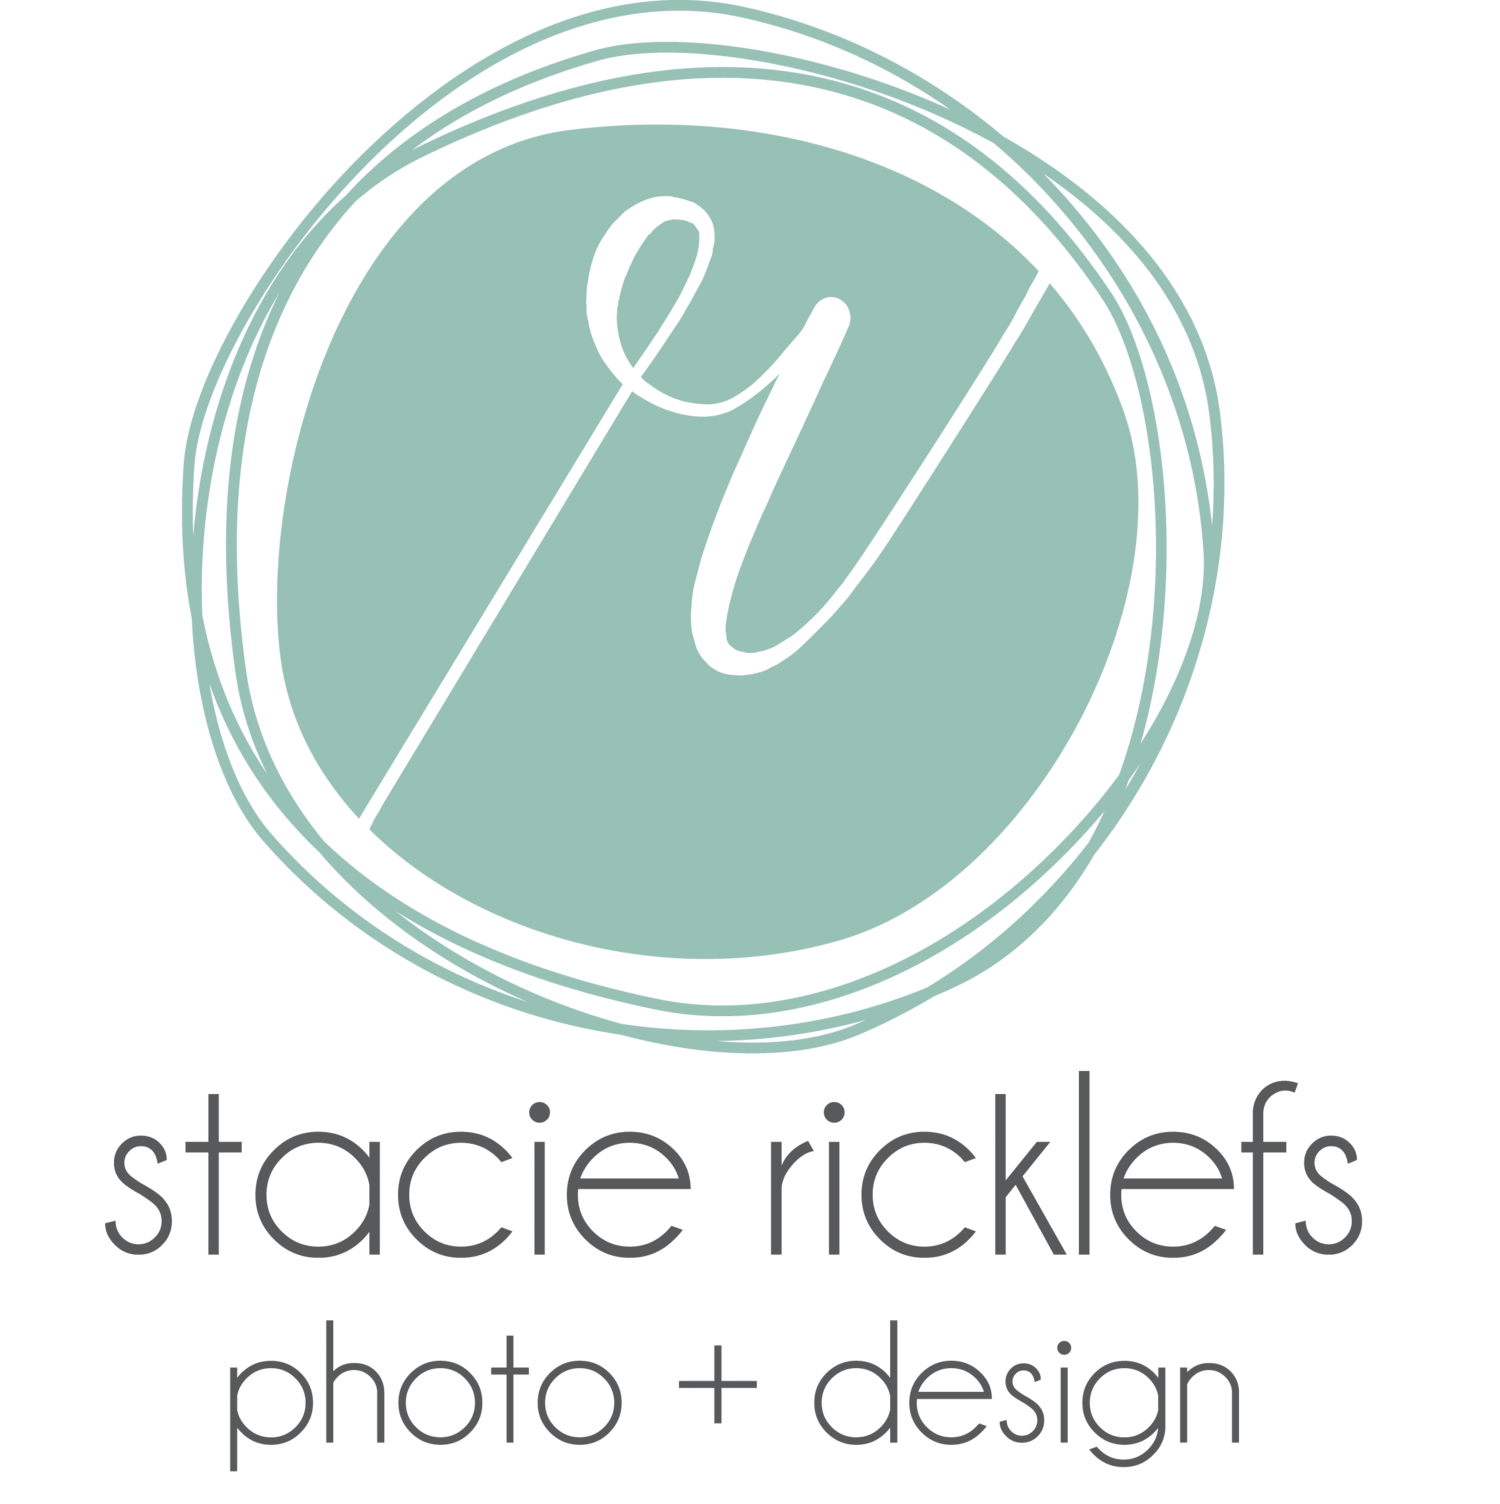 Stacie Ricklefs Photo + Design